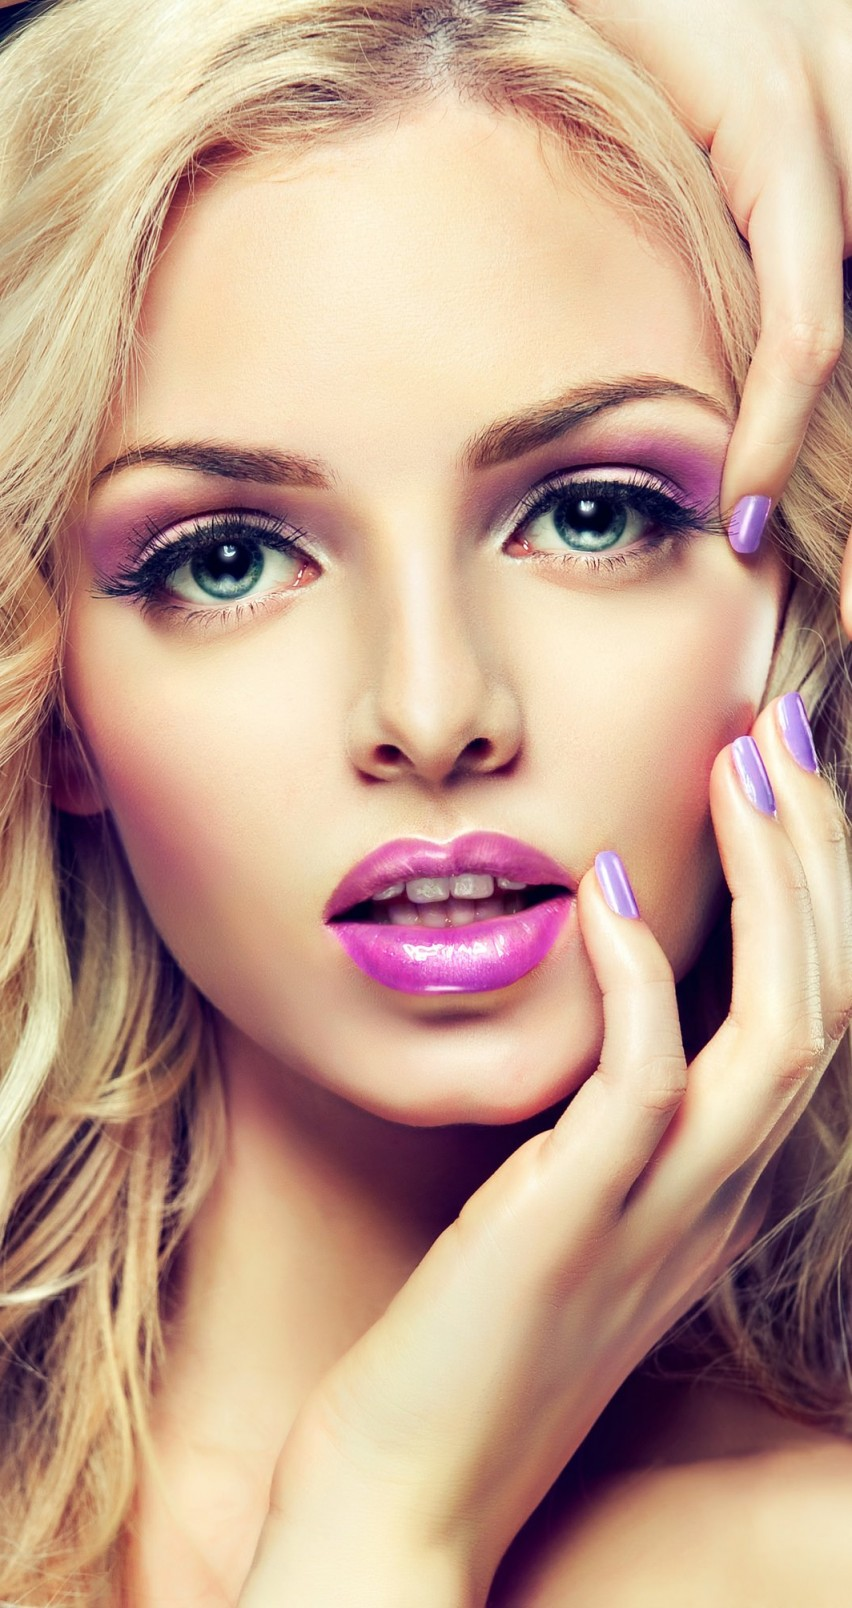 Beautiful Blonde Girl With Lilac Makeup Wallpaper for Apple iPhone 6 / 6s